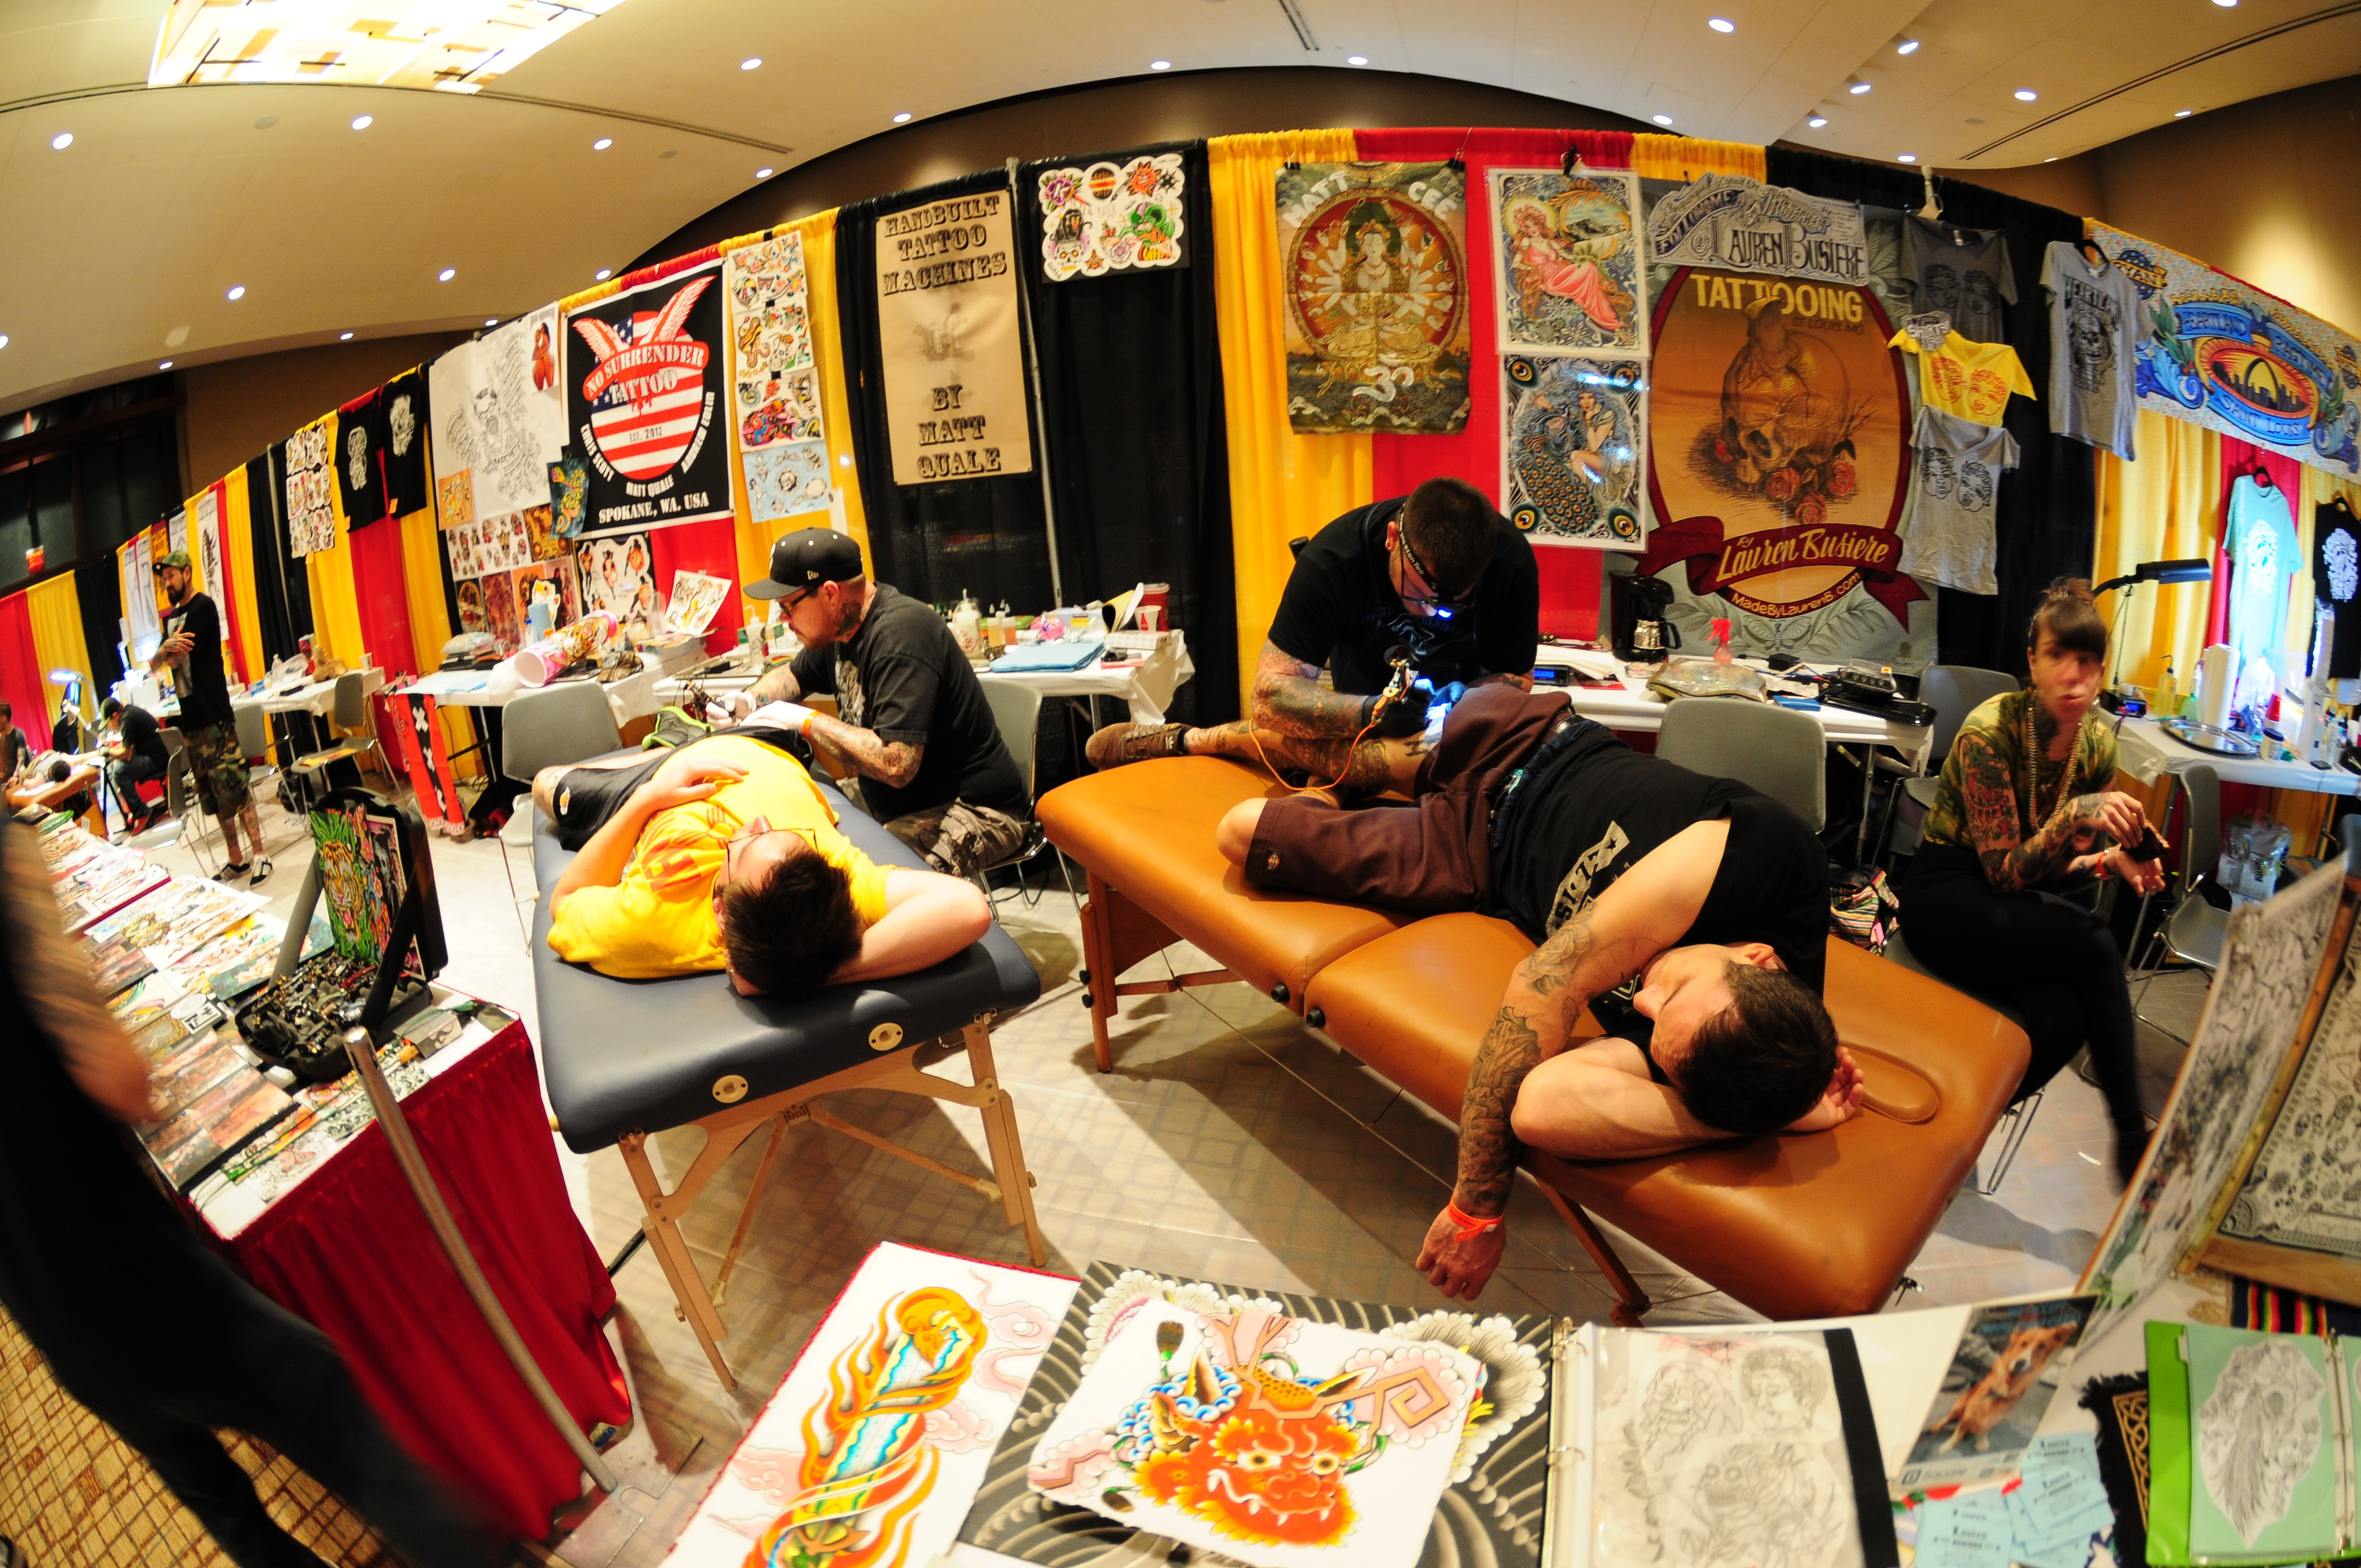 Get some fresh ink done: Hundreds of tattoo artists will be